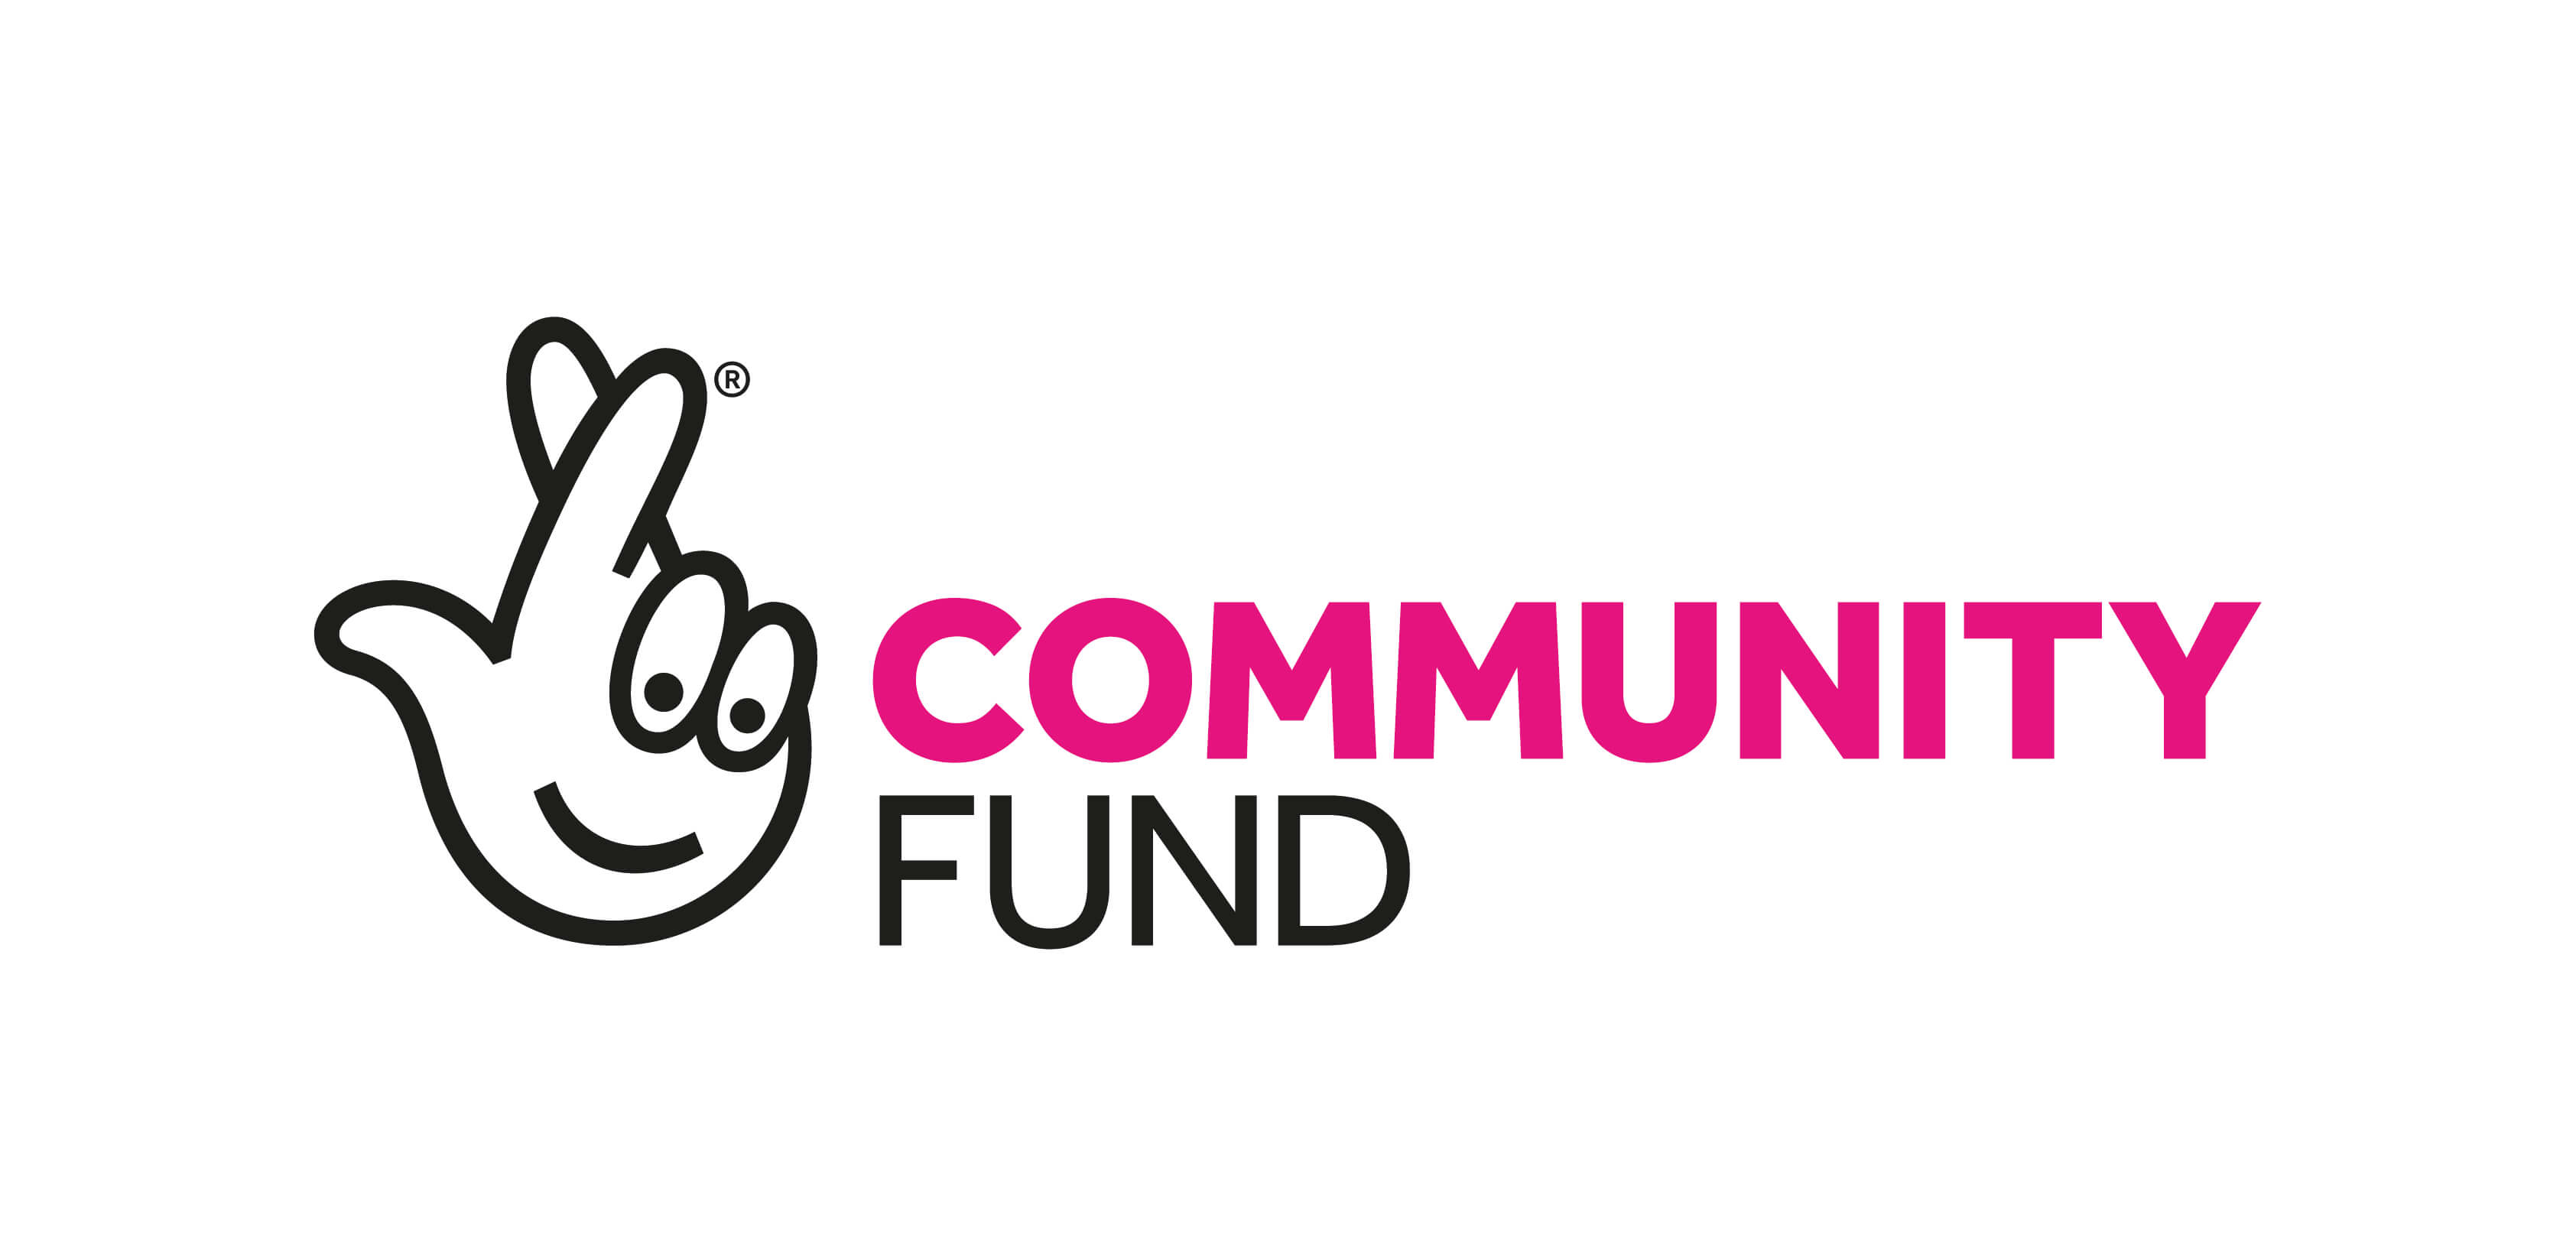 National Community Fund logo